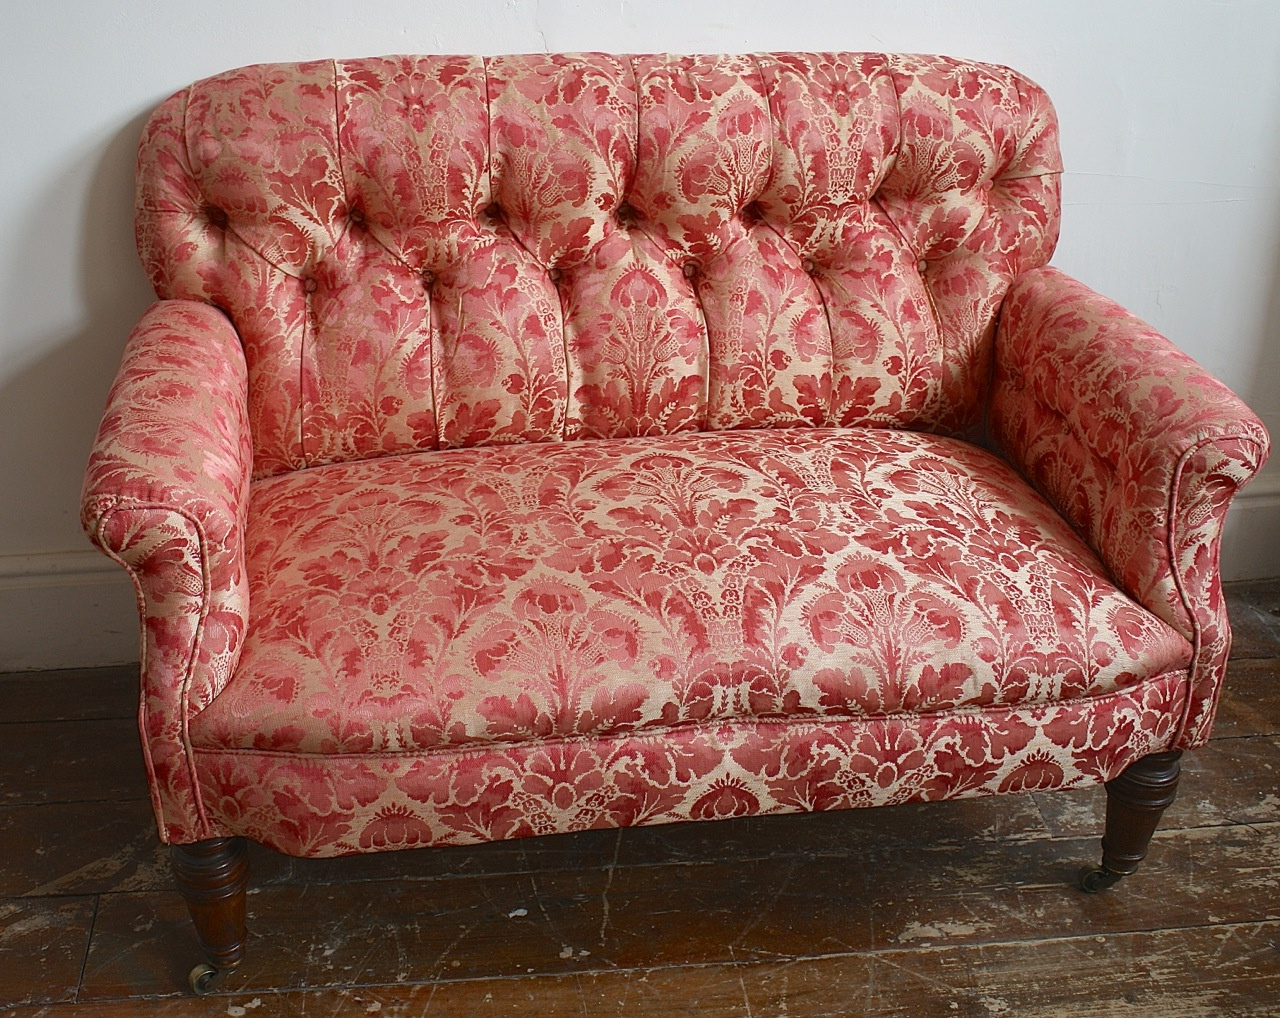 Favorite Leather Chairs Of Bath Early Victorian Sofa, Antique Sofa, Antique Regarding Antique Sofa Chairs (Gallery 11 of 20)